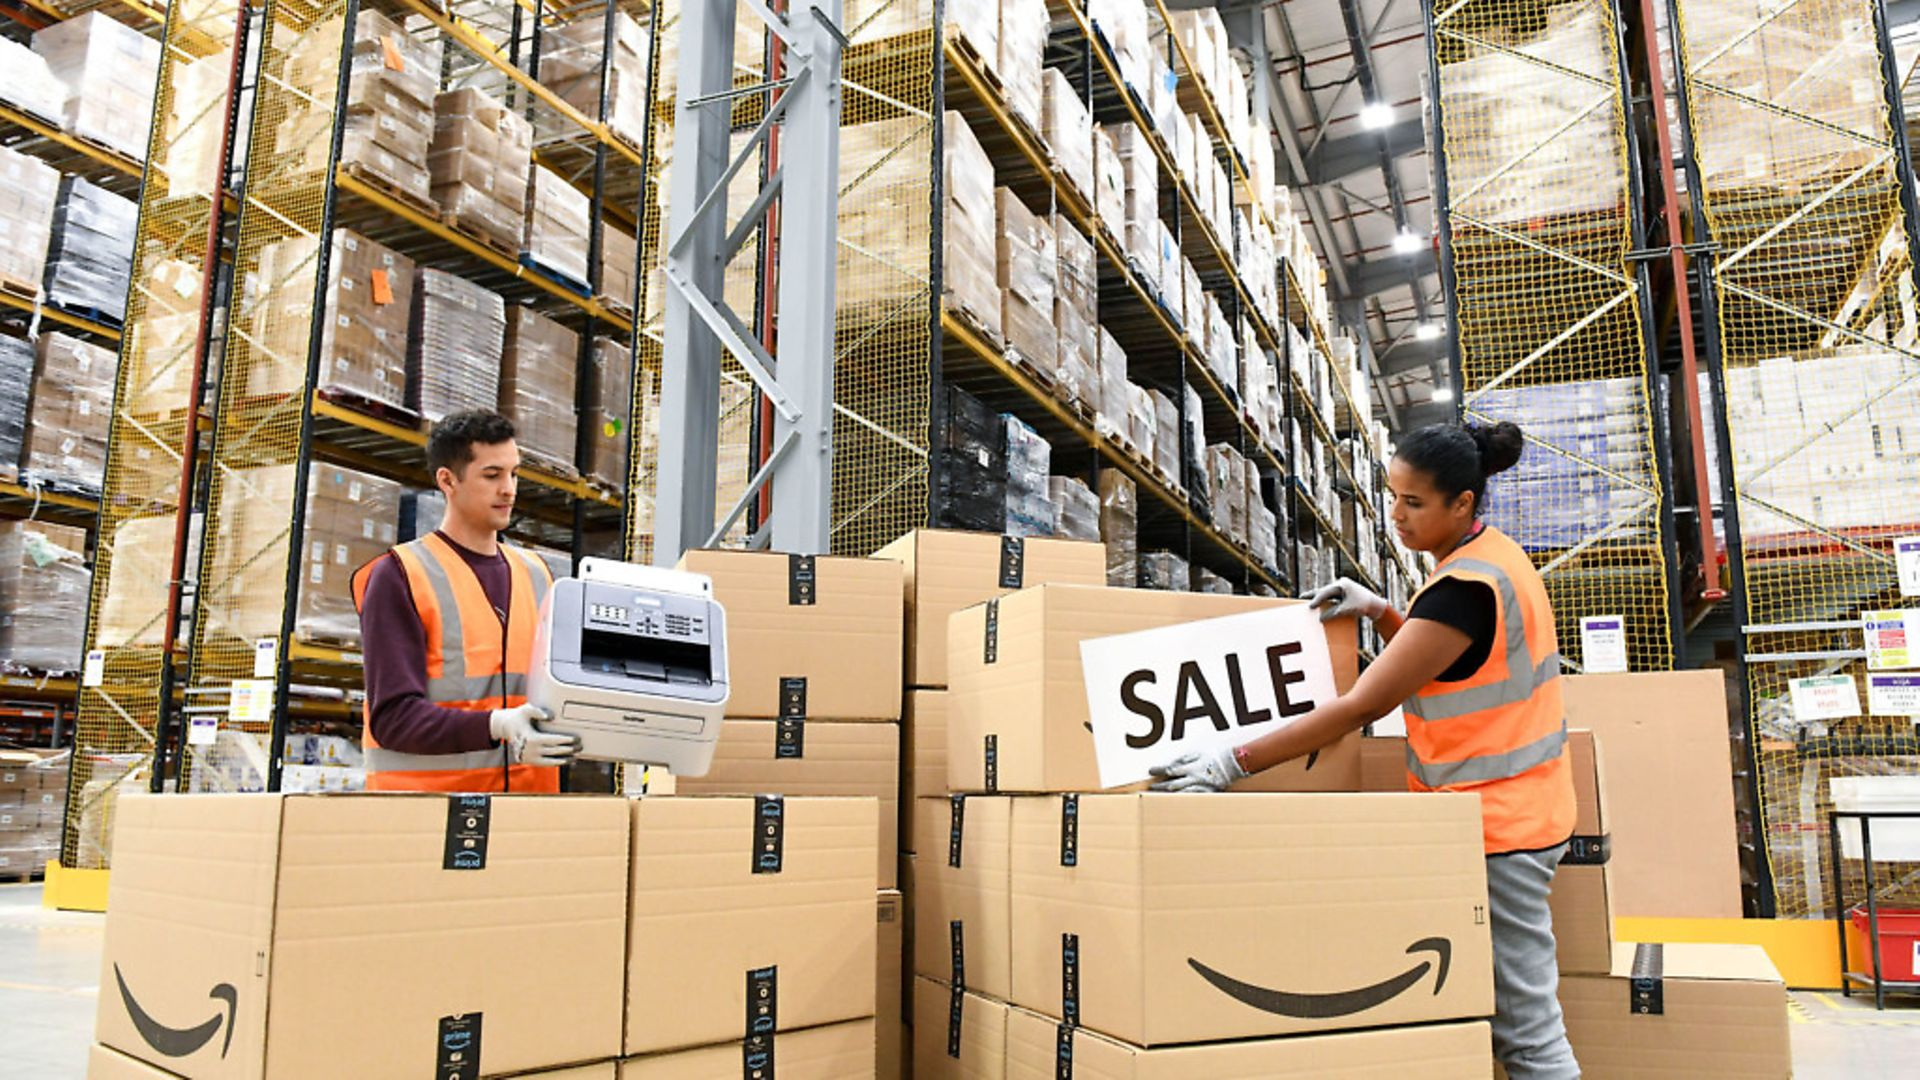 Staff at the Amazon Fulfilment Centre in Peterborough. Photograph: Doug Peters/PA. - Credit: PA